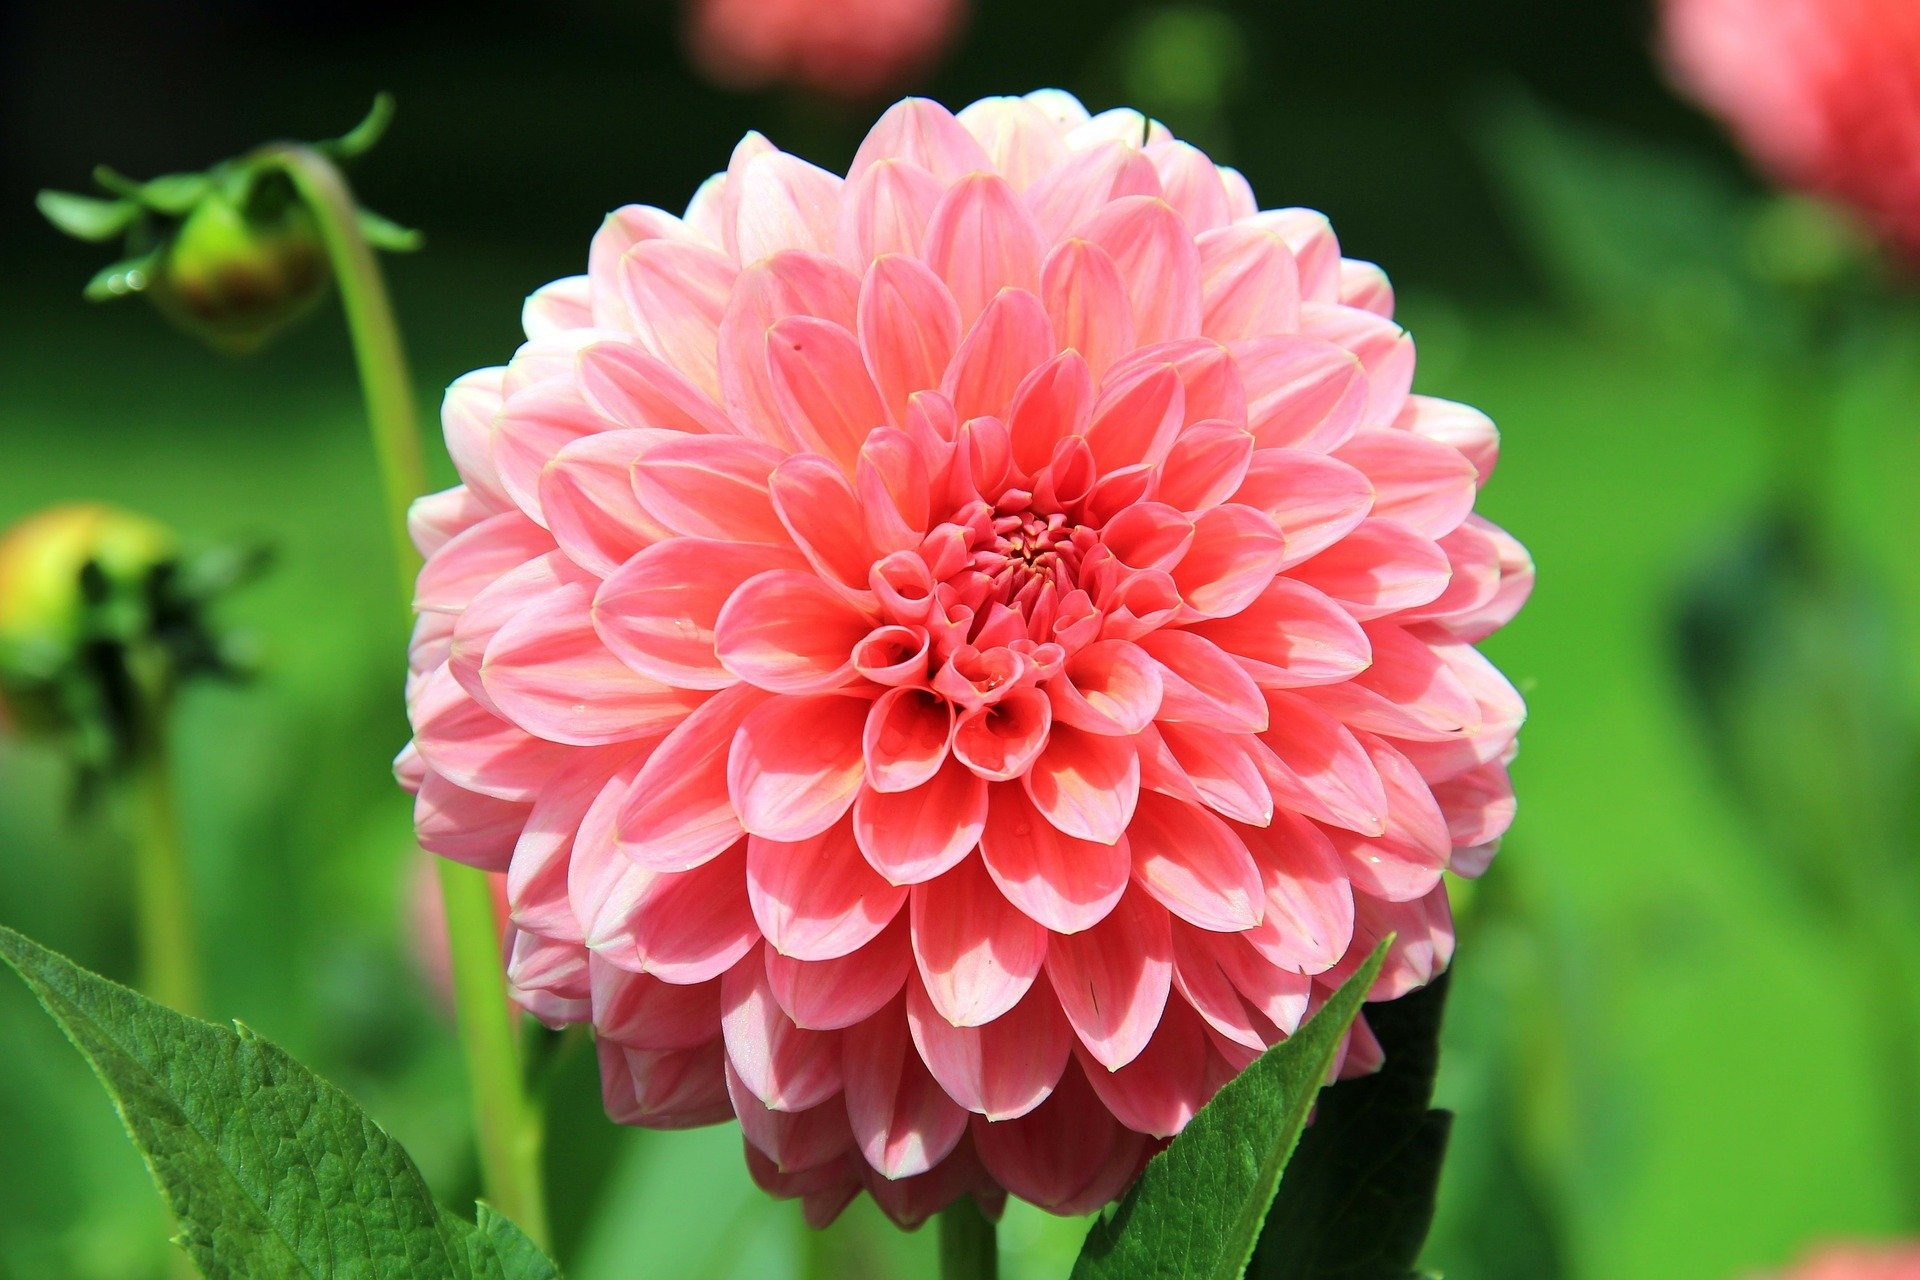 A large pink flower that you can grow when you buy Flower seeds online